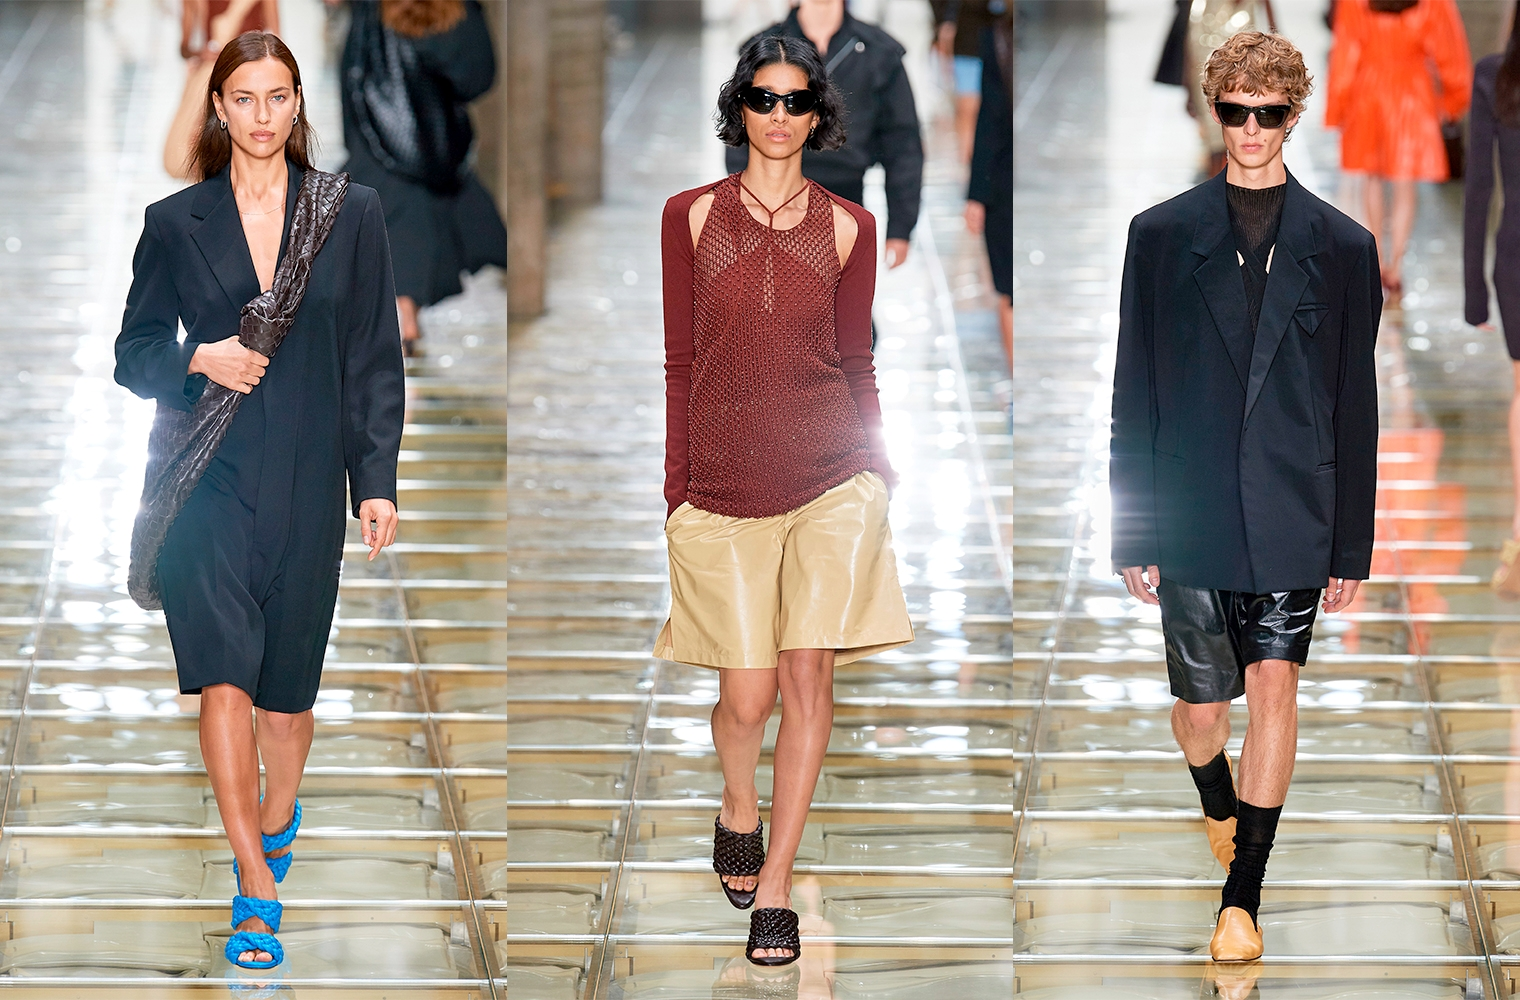 Bottega Veneta Spring/Summer 2020 Ready-to-Wear